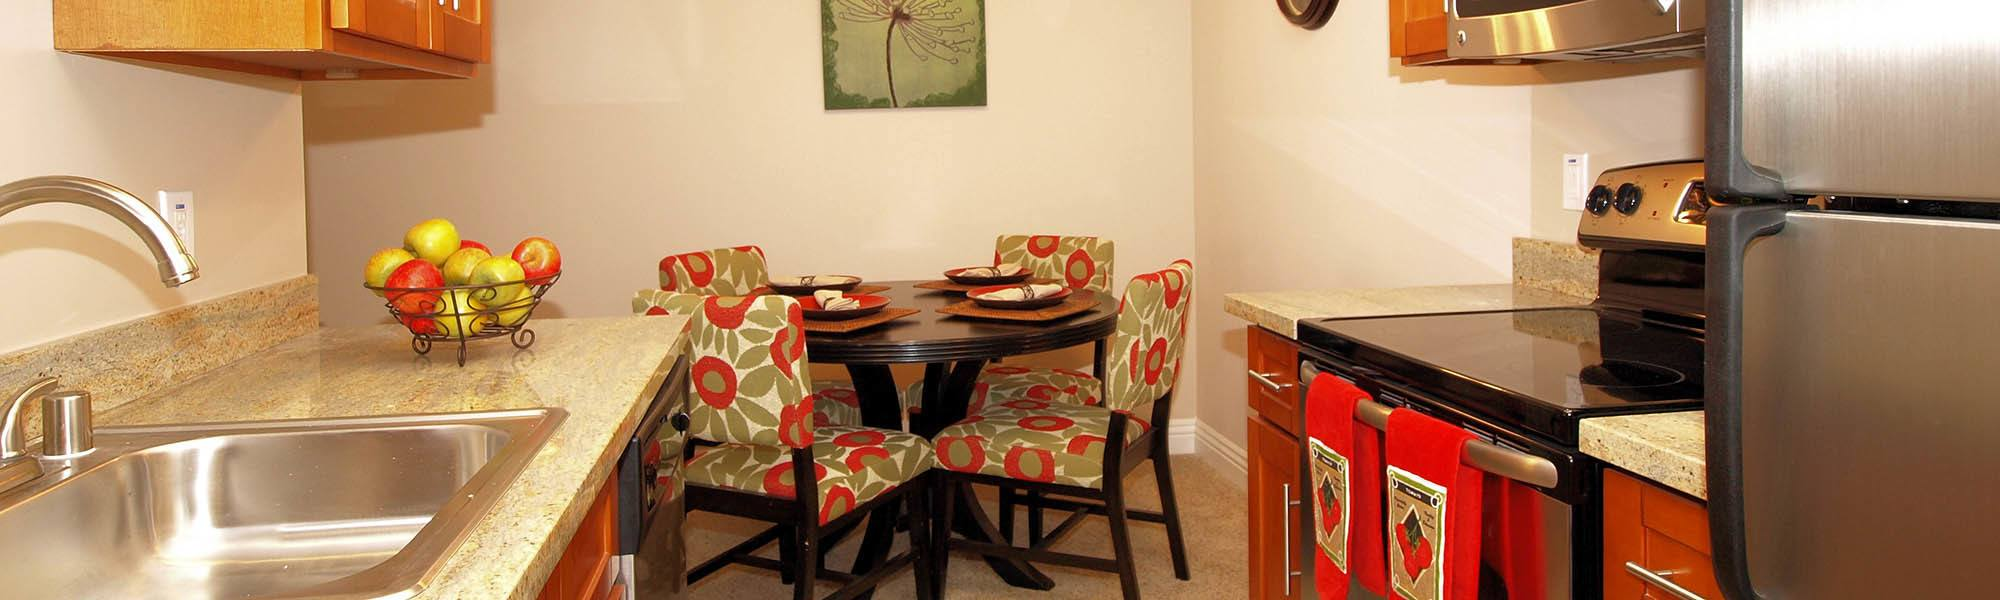 Contact Regency Plaza Apartment Homes on our website